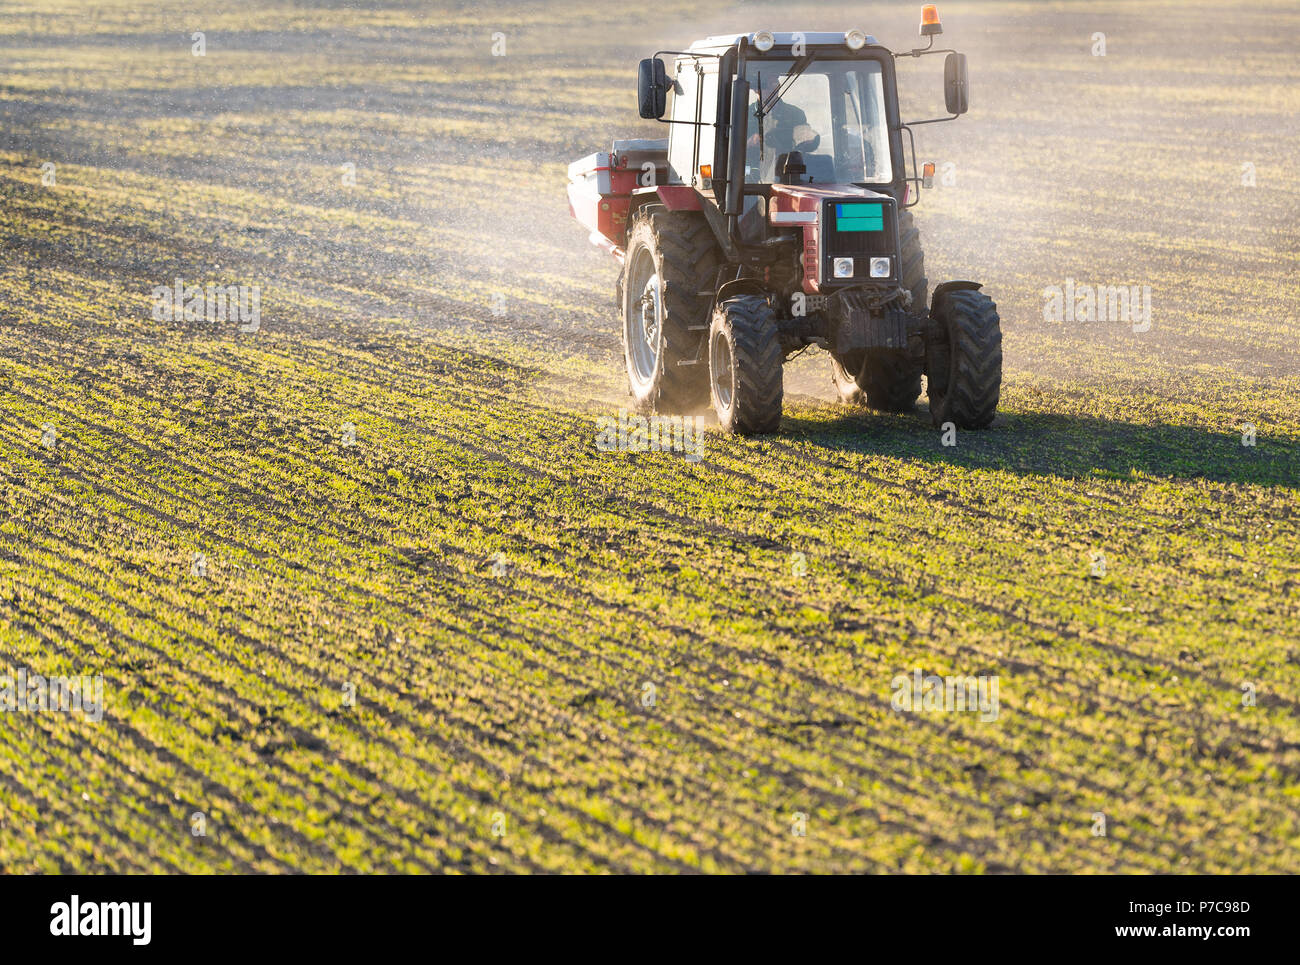 Tractor spreading artificial fertilizers  in field - Stock Image